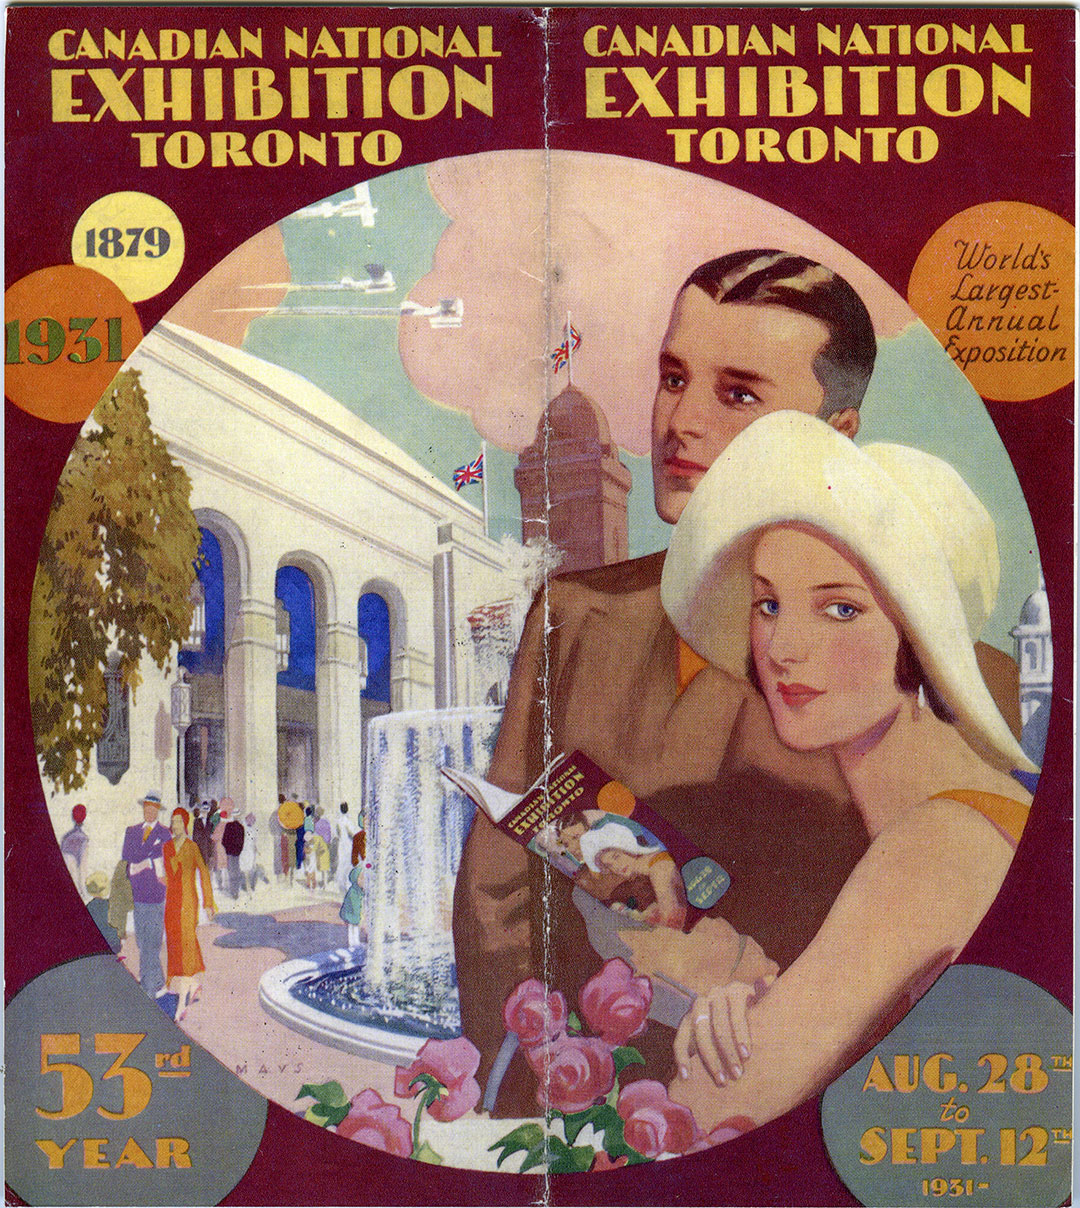 CNE Programme Cover, 1931